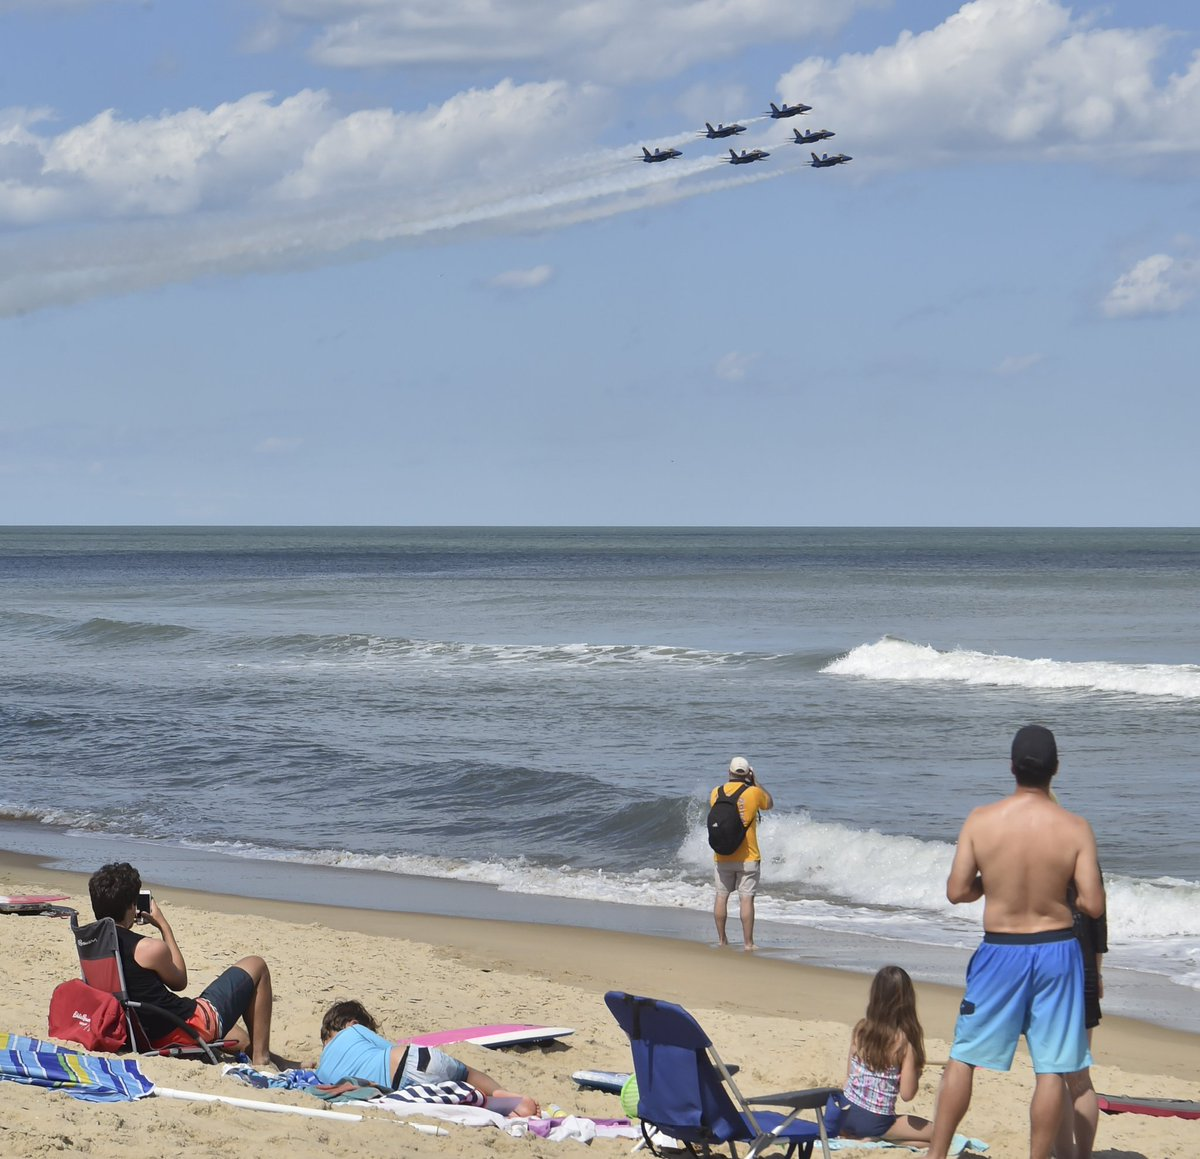 It's the last day of the #OCAirShow, Ocean City, Maryland!  Your #BlueAngels are beach-bound for a 2:45 p.m. show!  #USNavy #USMC #ForgedByTheSea #SemperFi